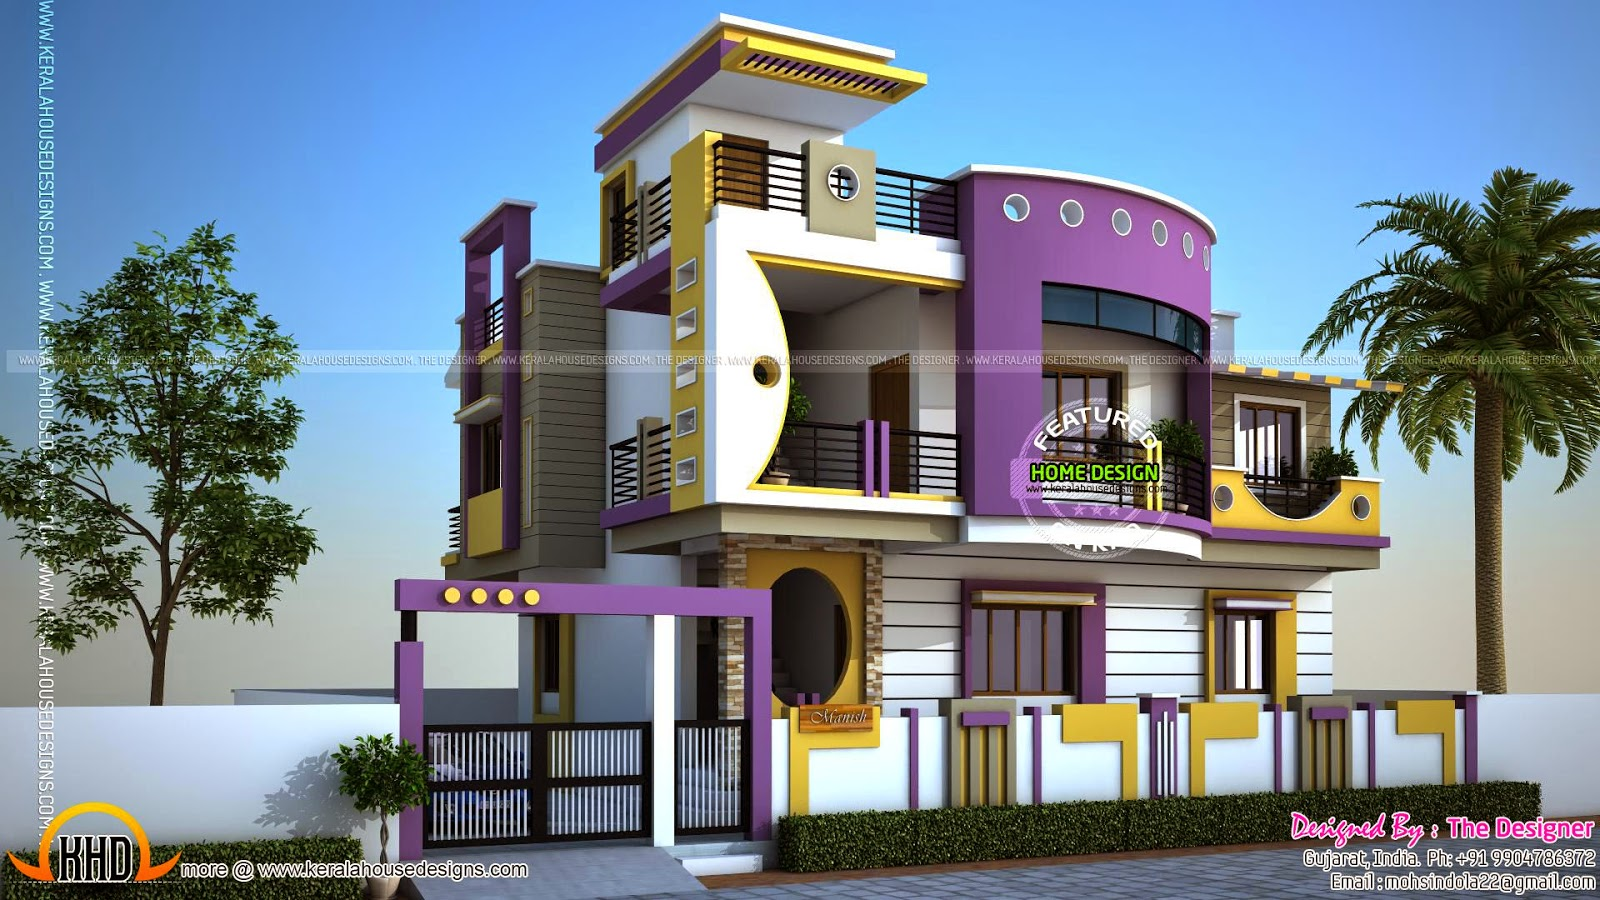 House exterior designs in contemporary style kerala home for Home front design photo